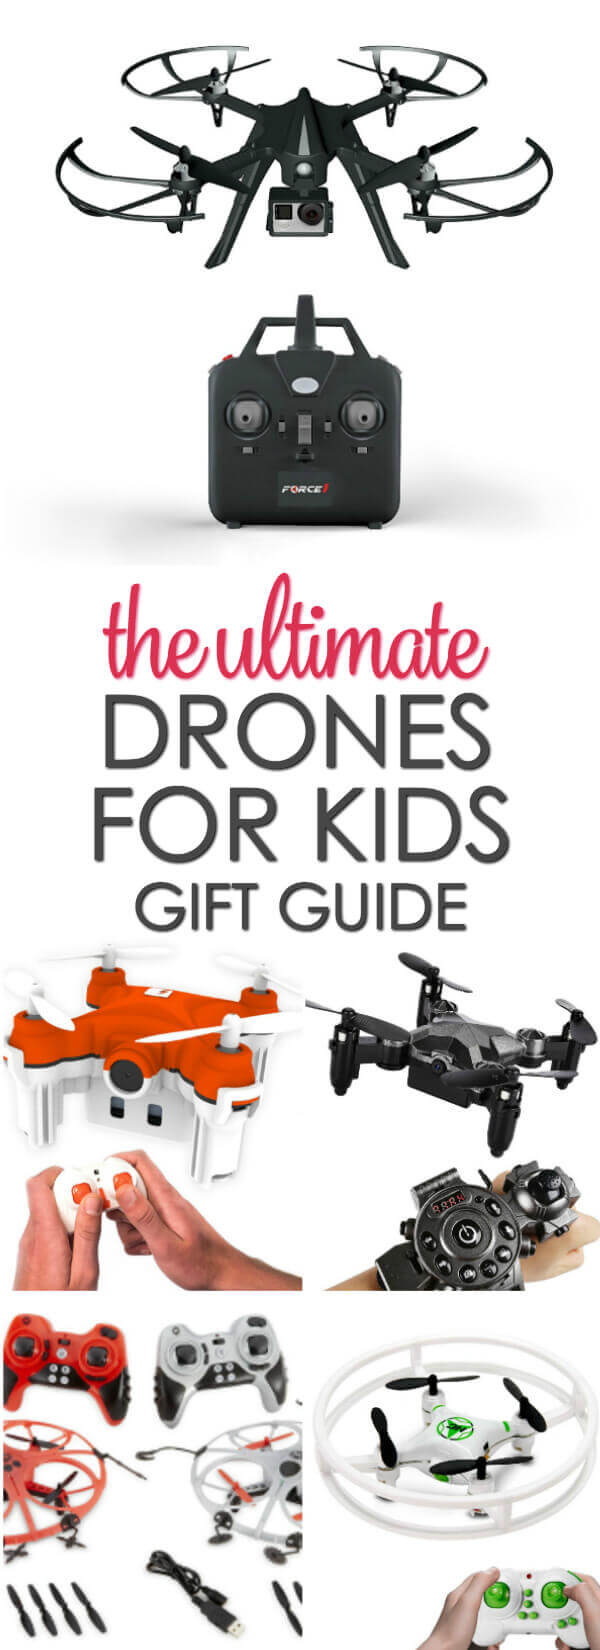 This Drones for Kids Gift Guide is the perfect gift idea list for your aspiring pilot.  These are some of the top Christmas gifts kids.